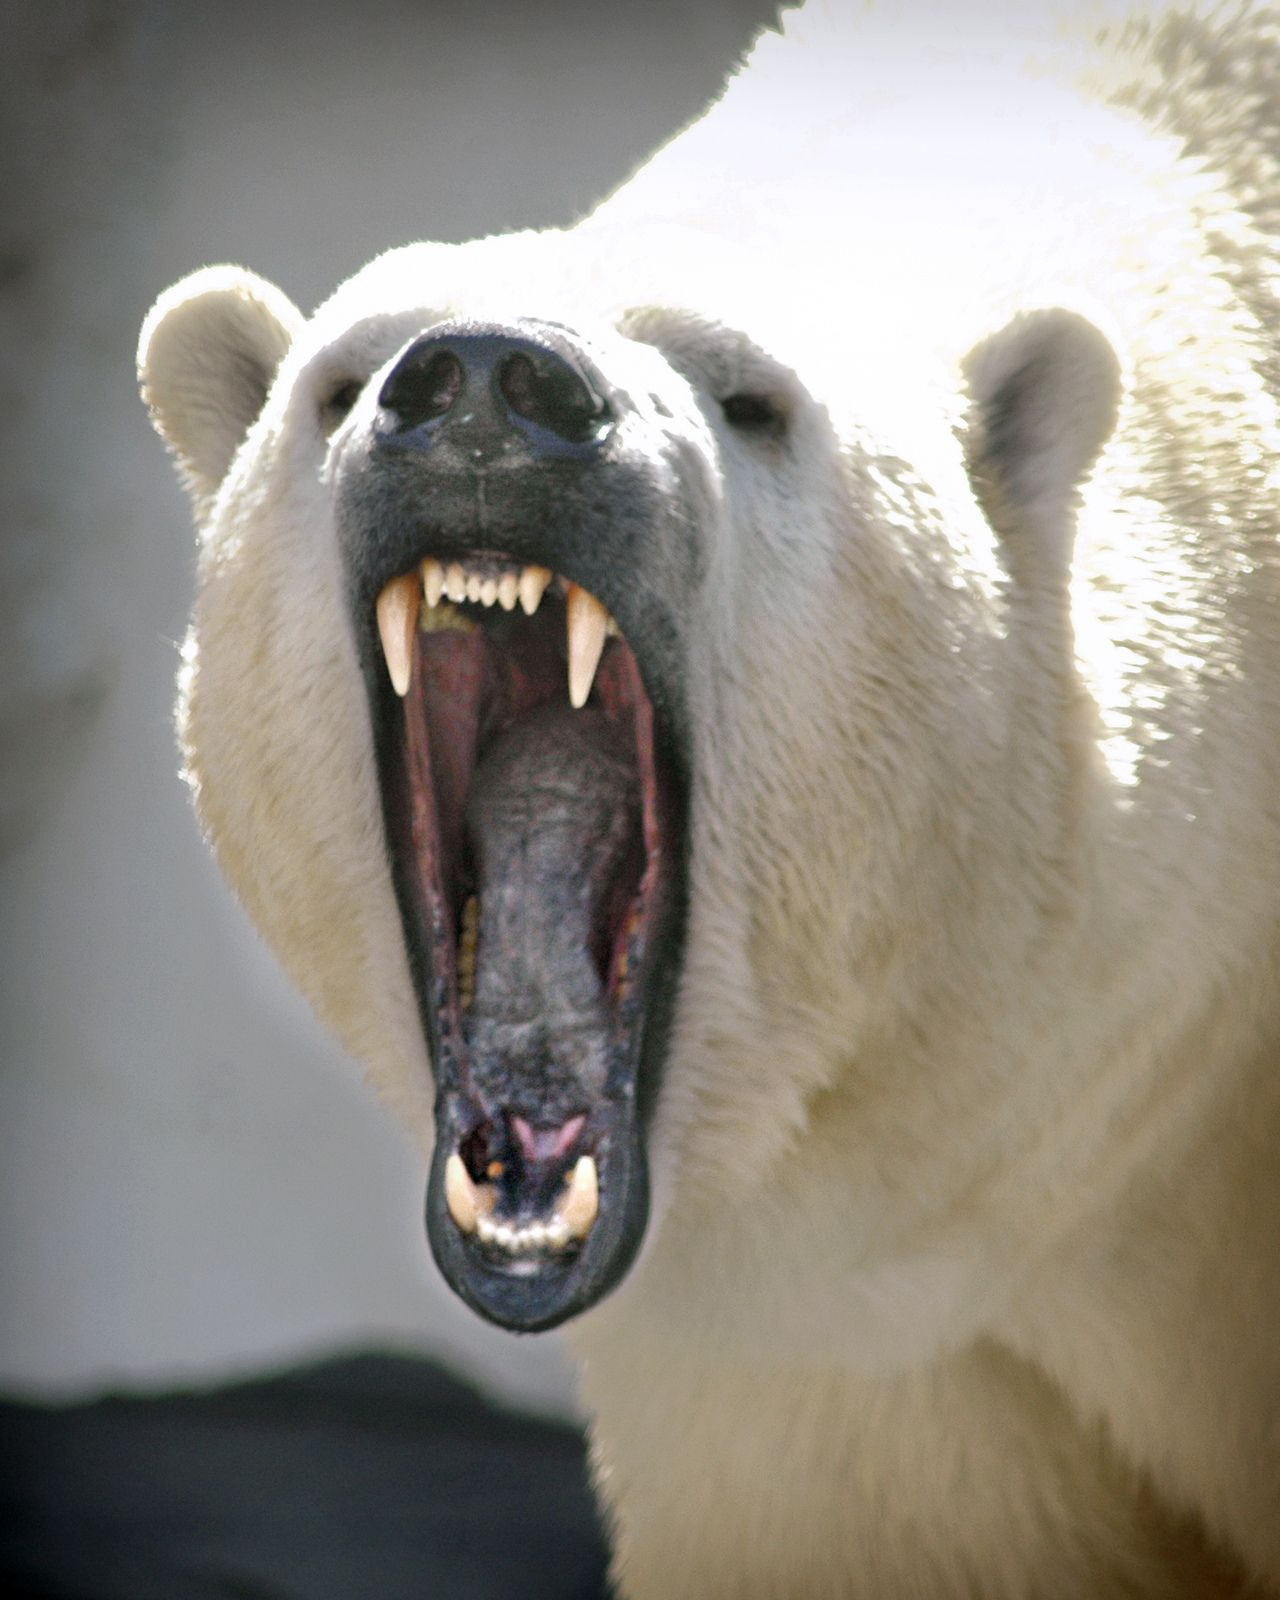 7 healthier New York City pizza places you've got to try Angry polar bear images